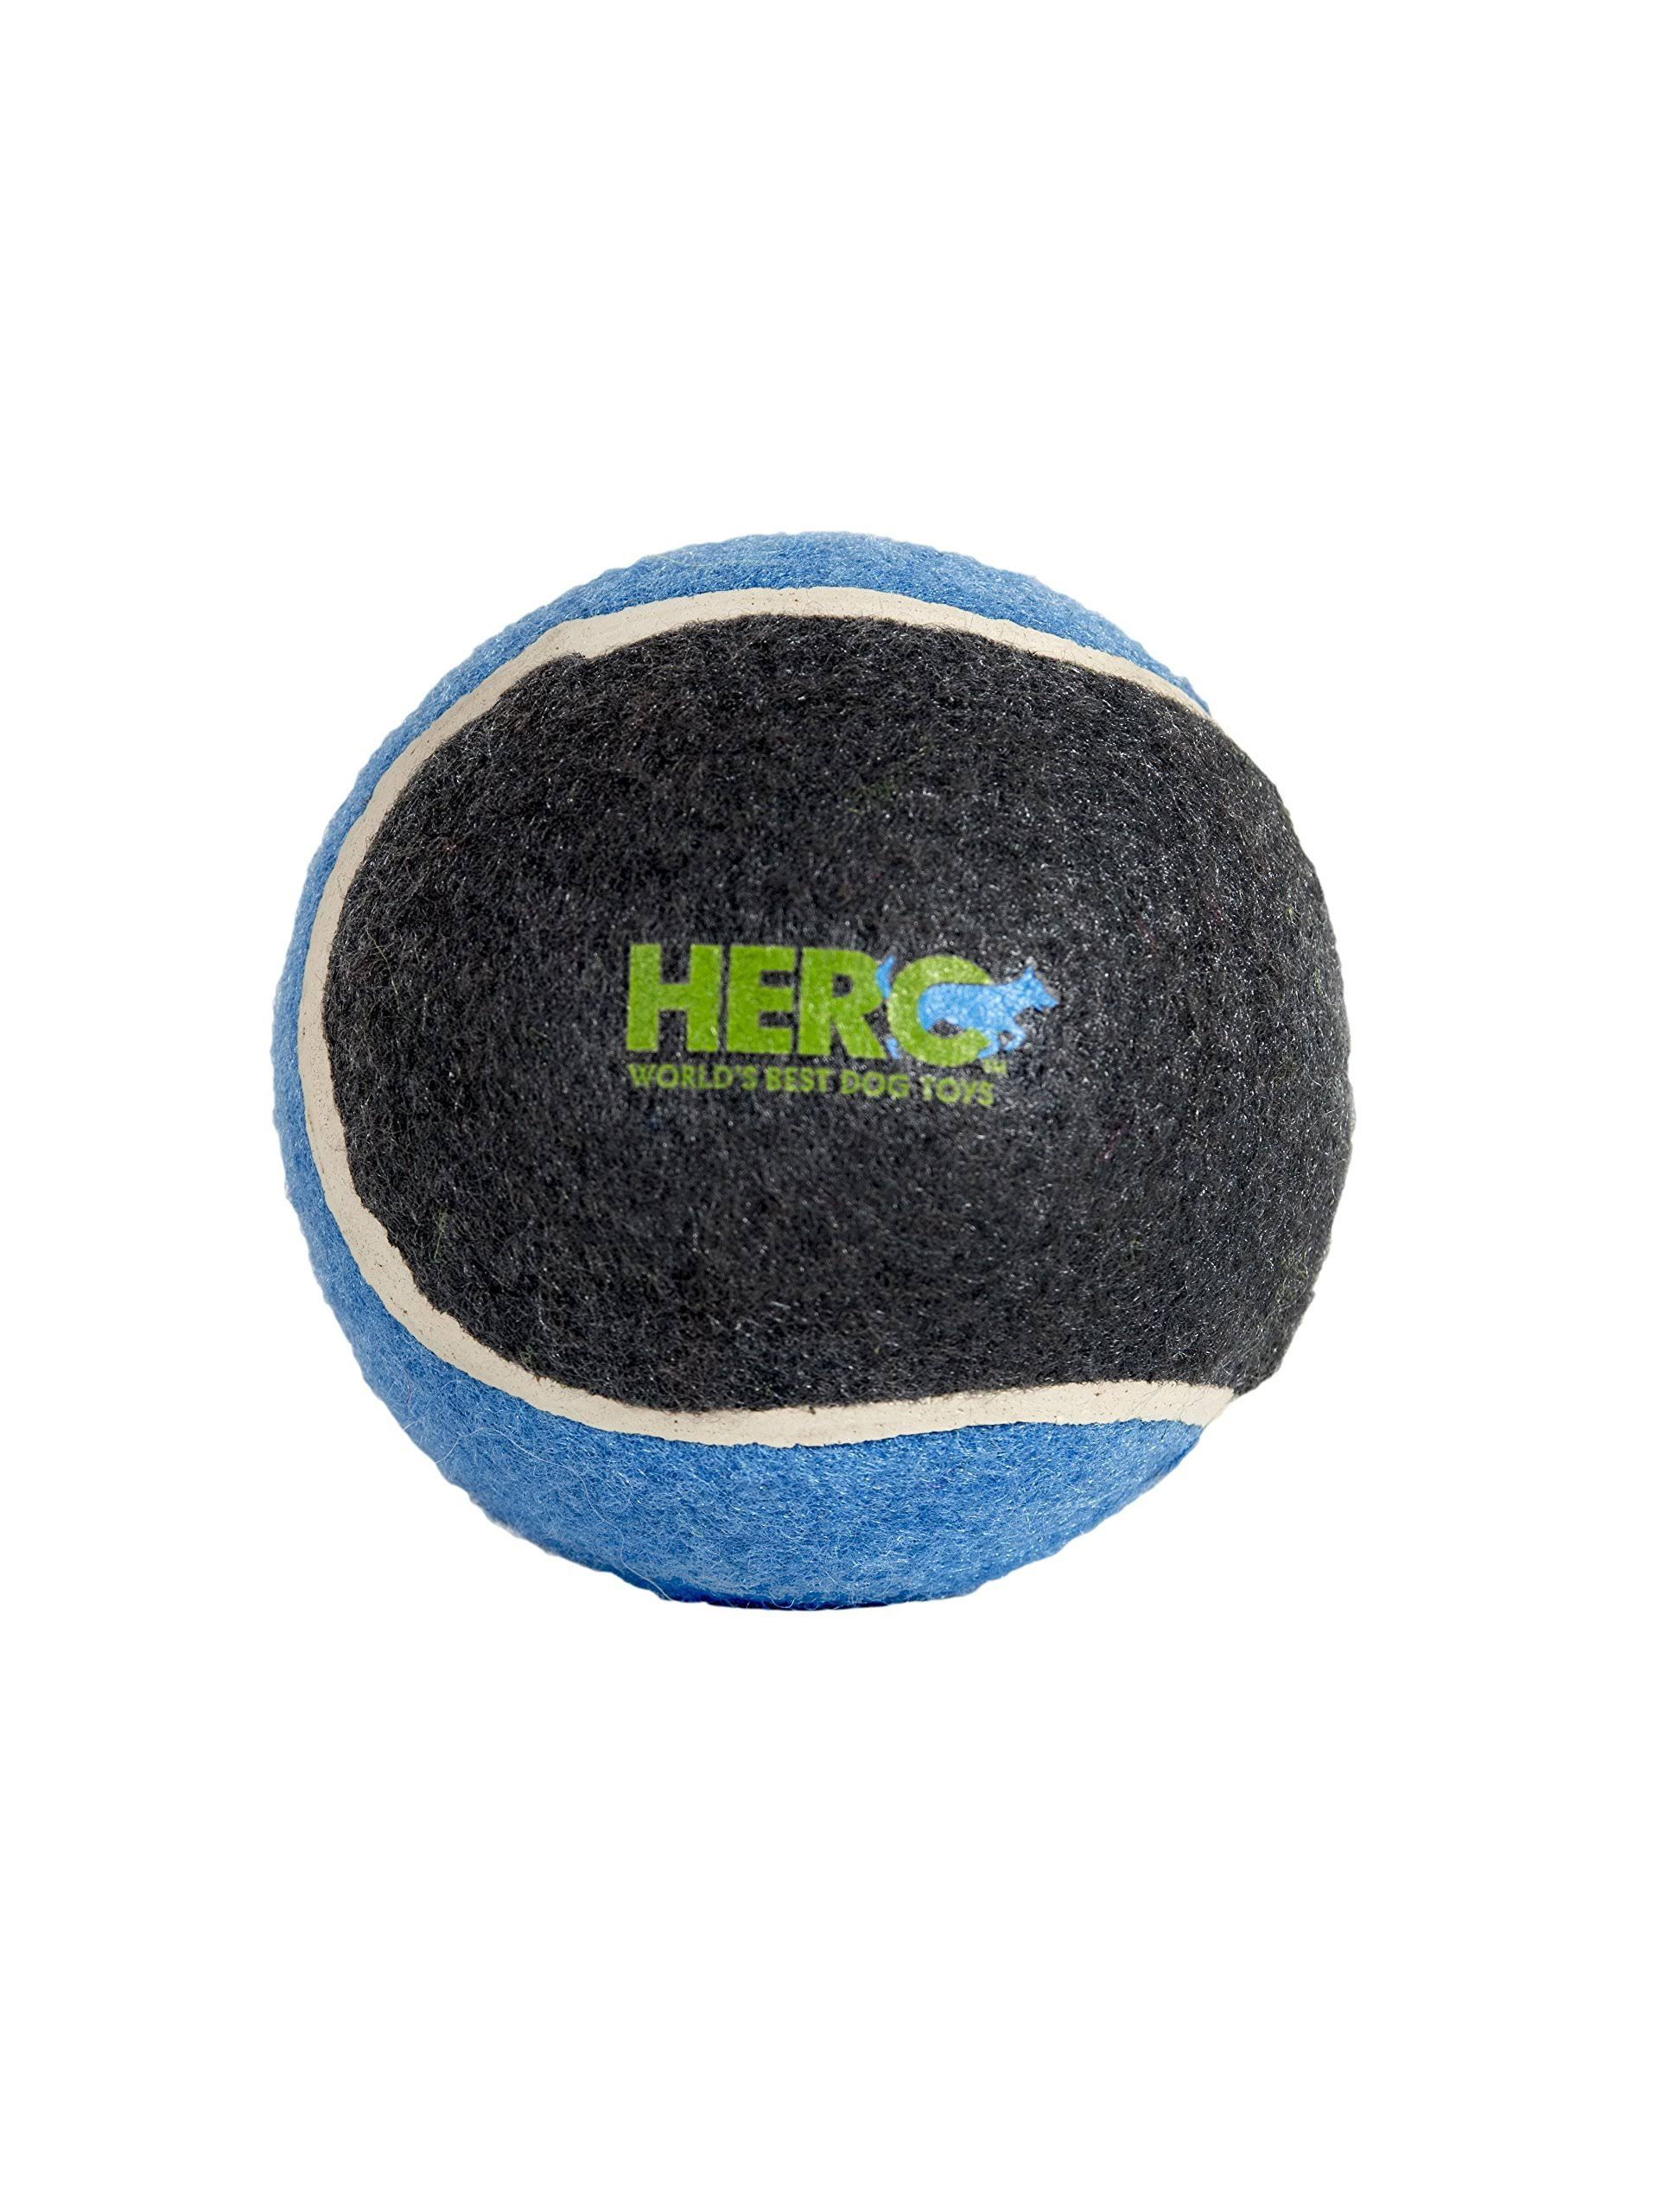 Hero Signature Series Natural Rubber Tennis Ball Dog Toy - Large